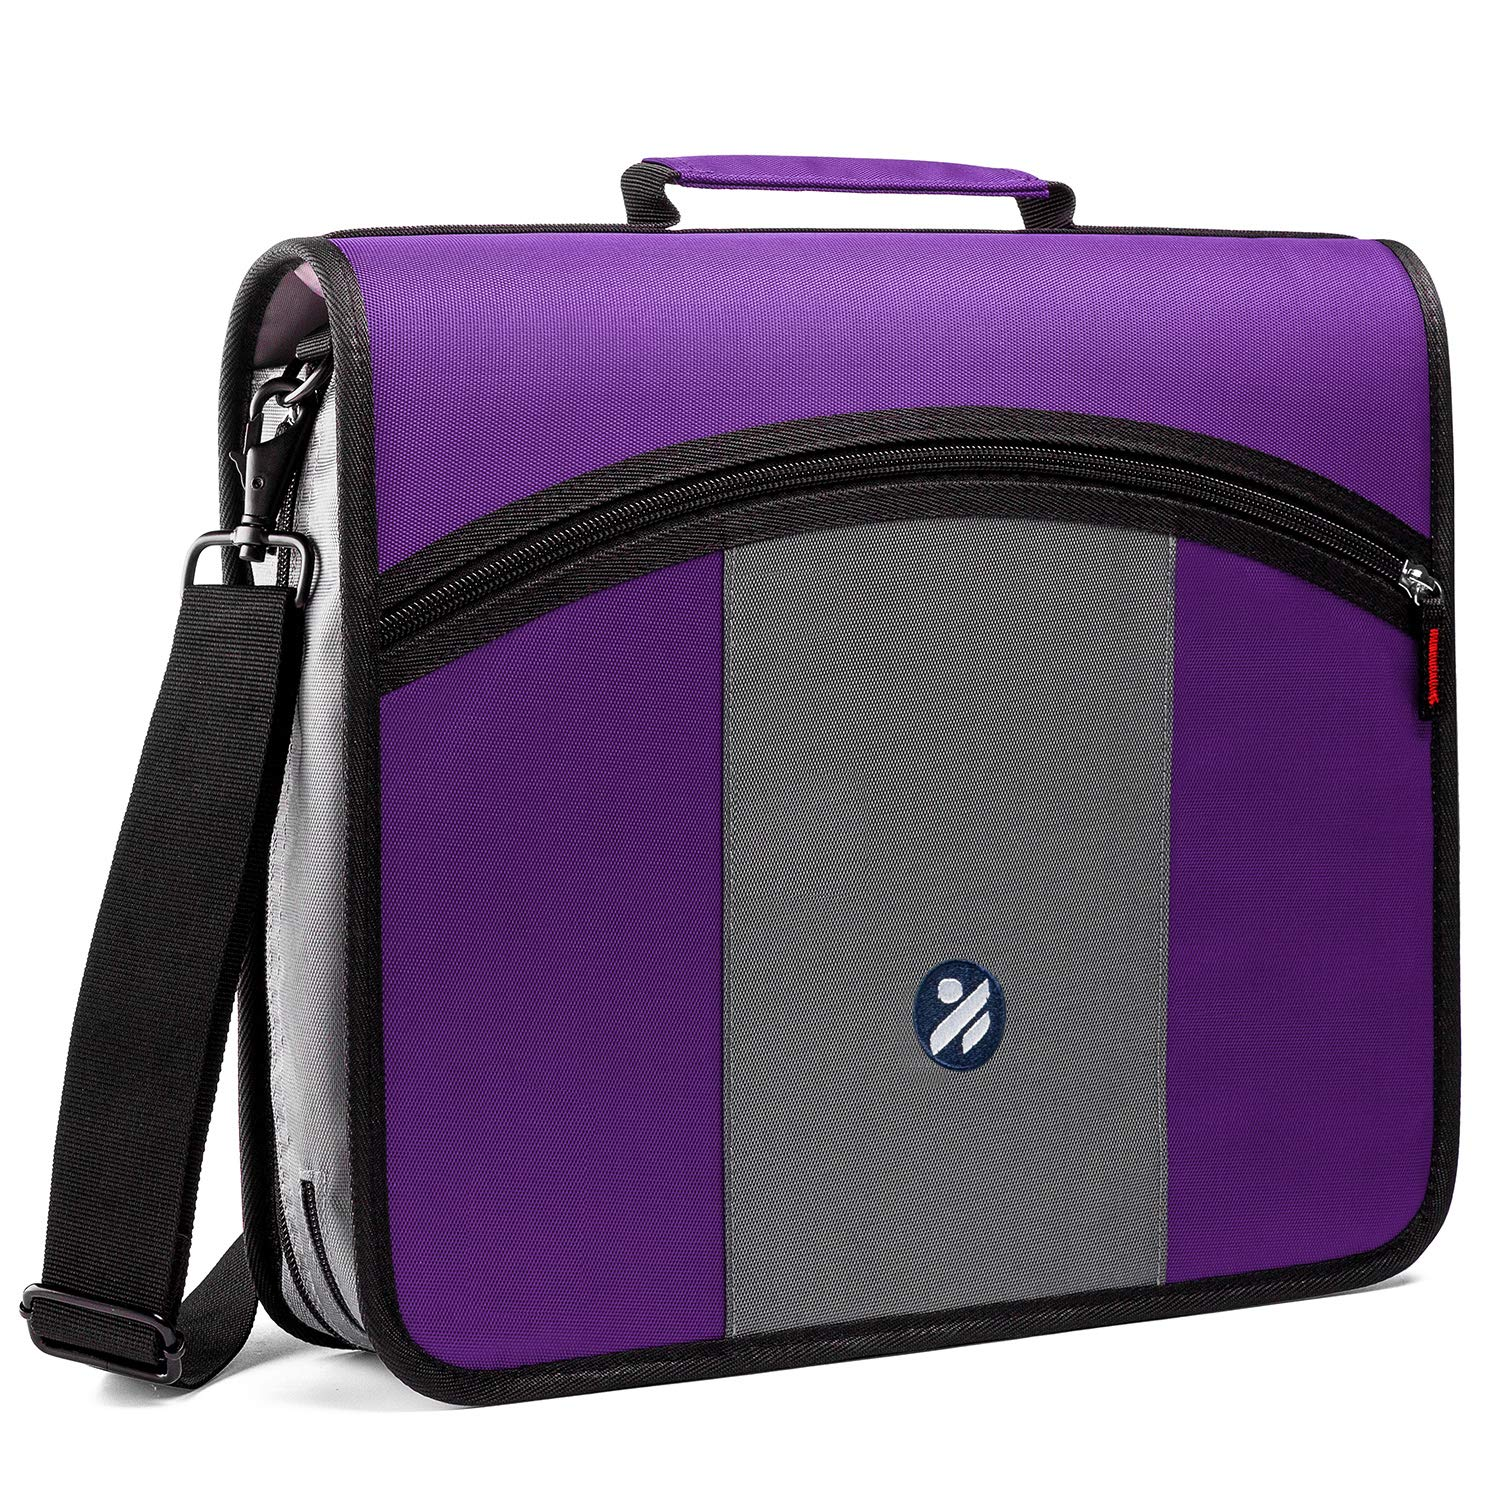 Kinbashi 3-Inch Zipper Binder, Round Ring Binder with Expanding Files, Handle and Shoulder Strap, Purple by Kinbashi